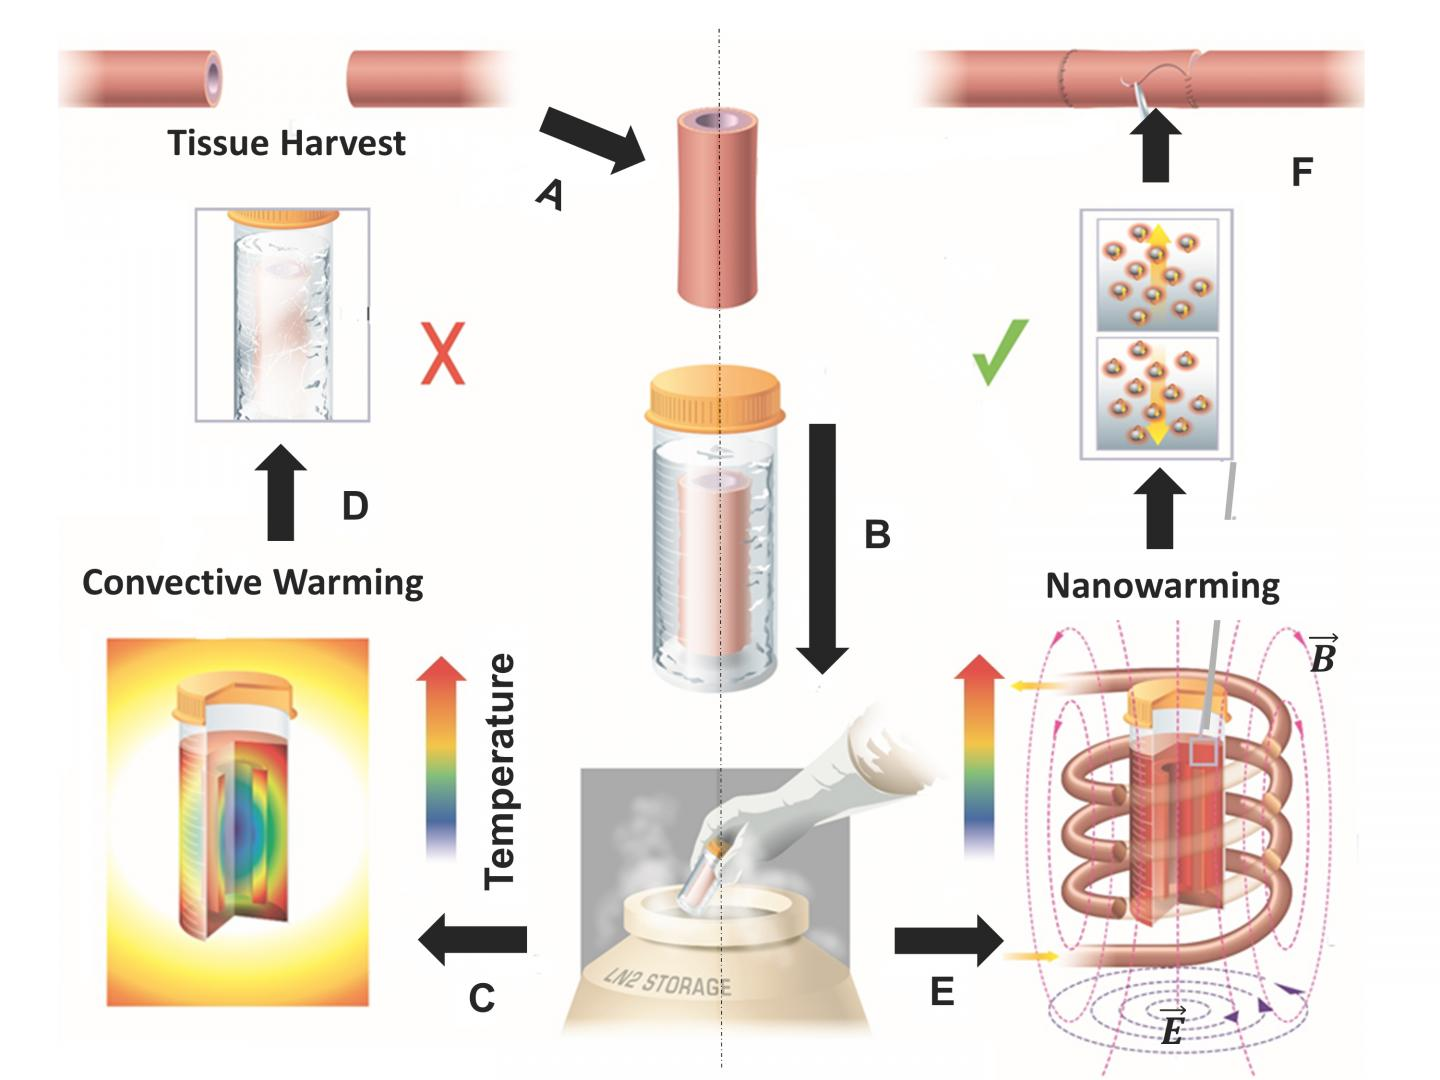 Warming Up to Cryopreservation